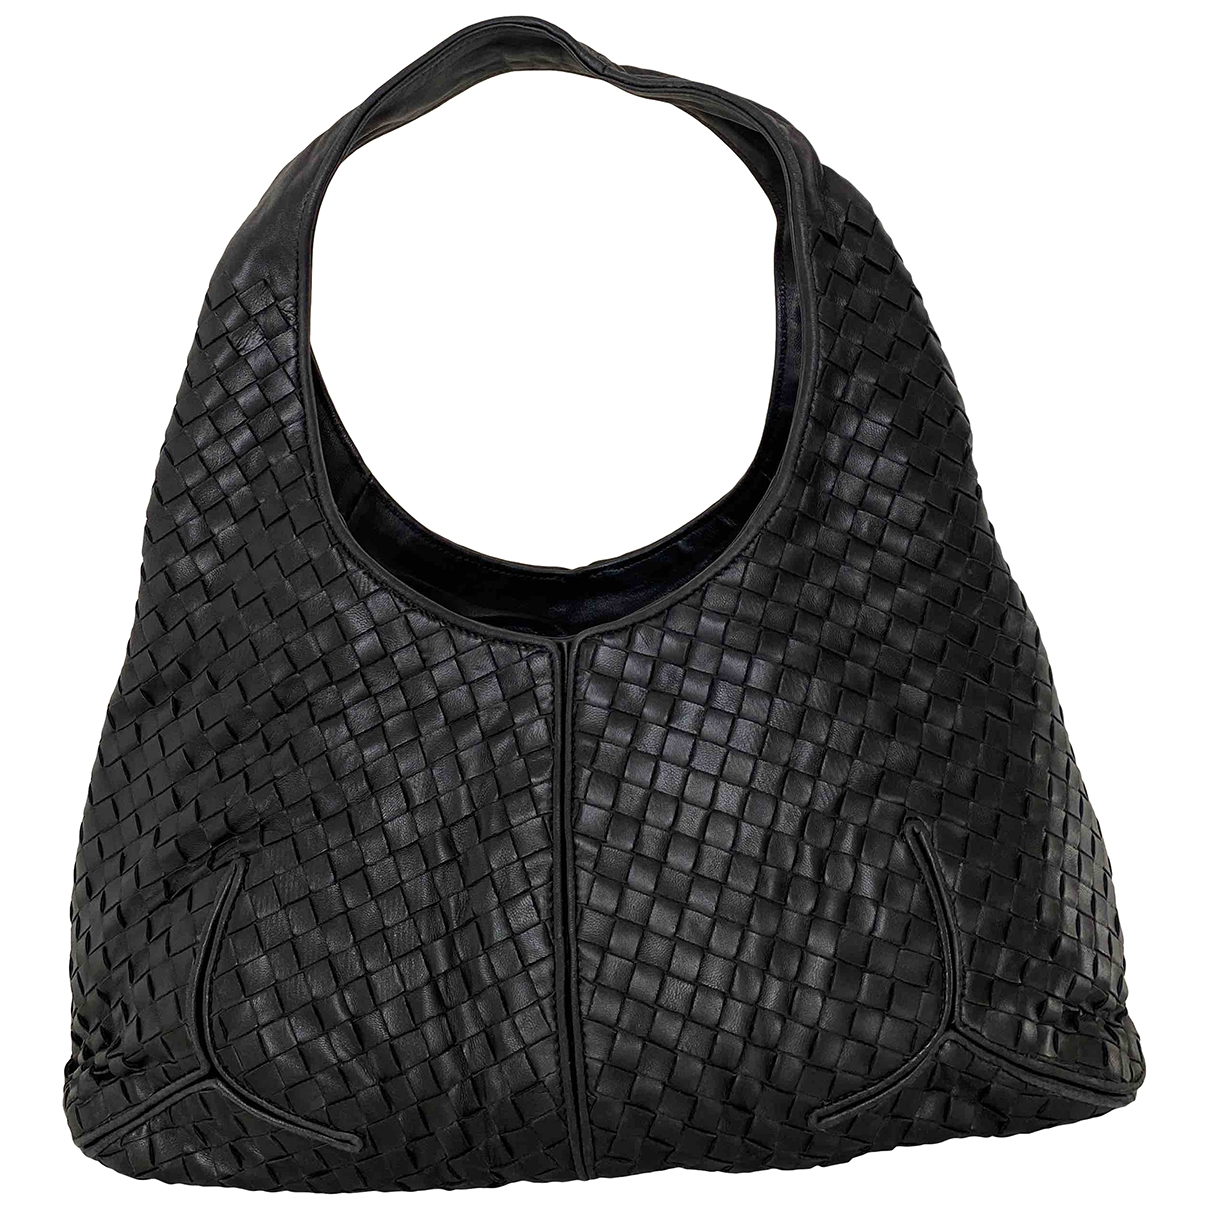 Bottega Veneta Veneta Black Leather handbag for Women \N